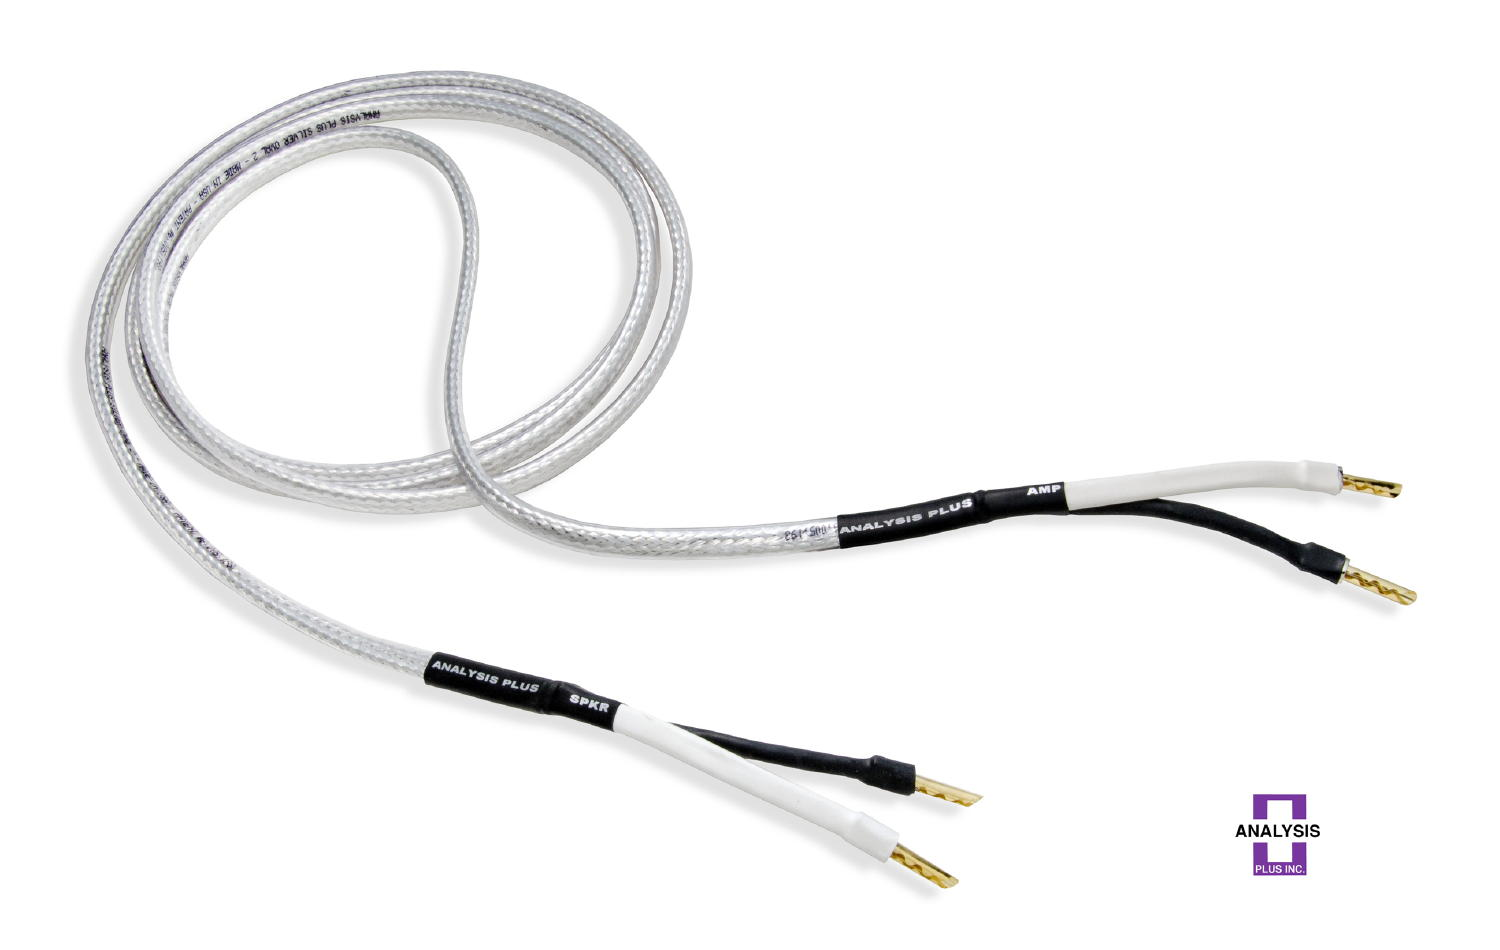 analysis plus silver oval 2 speaker cable